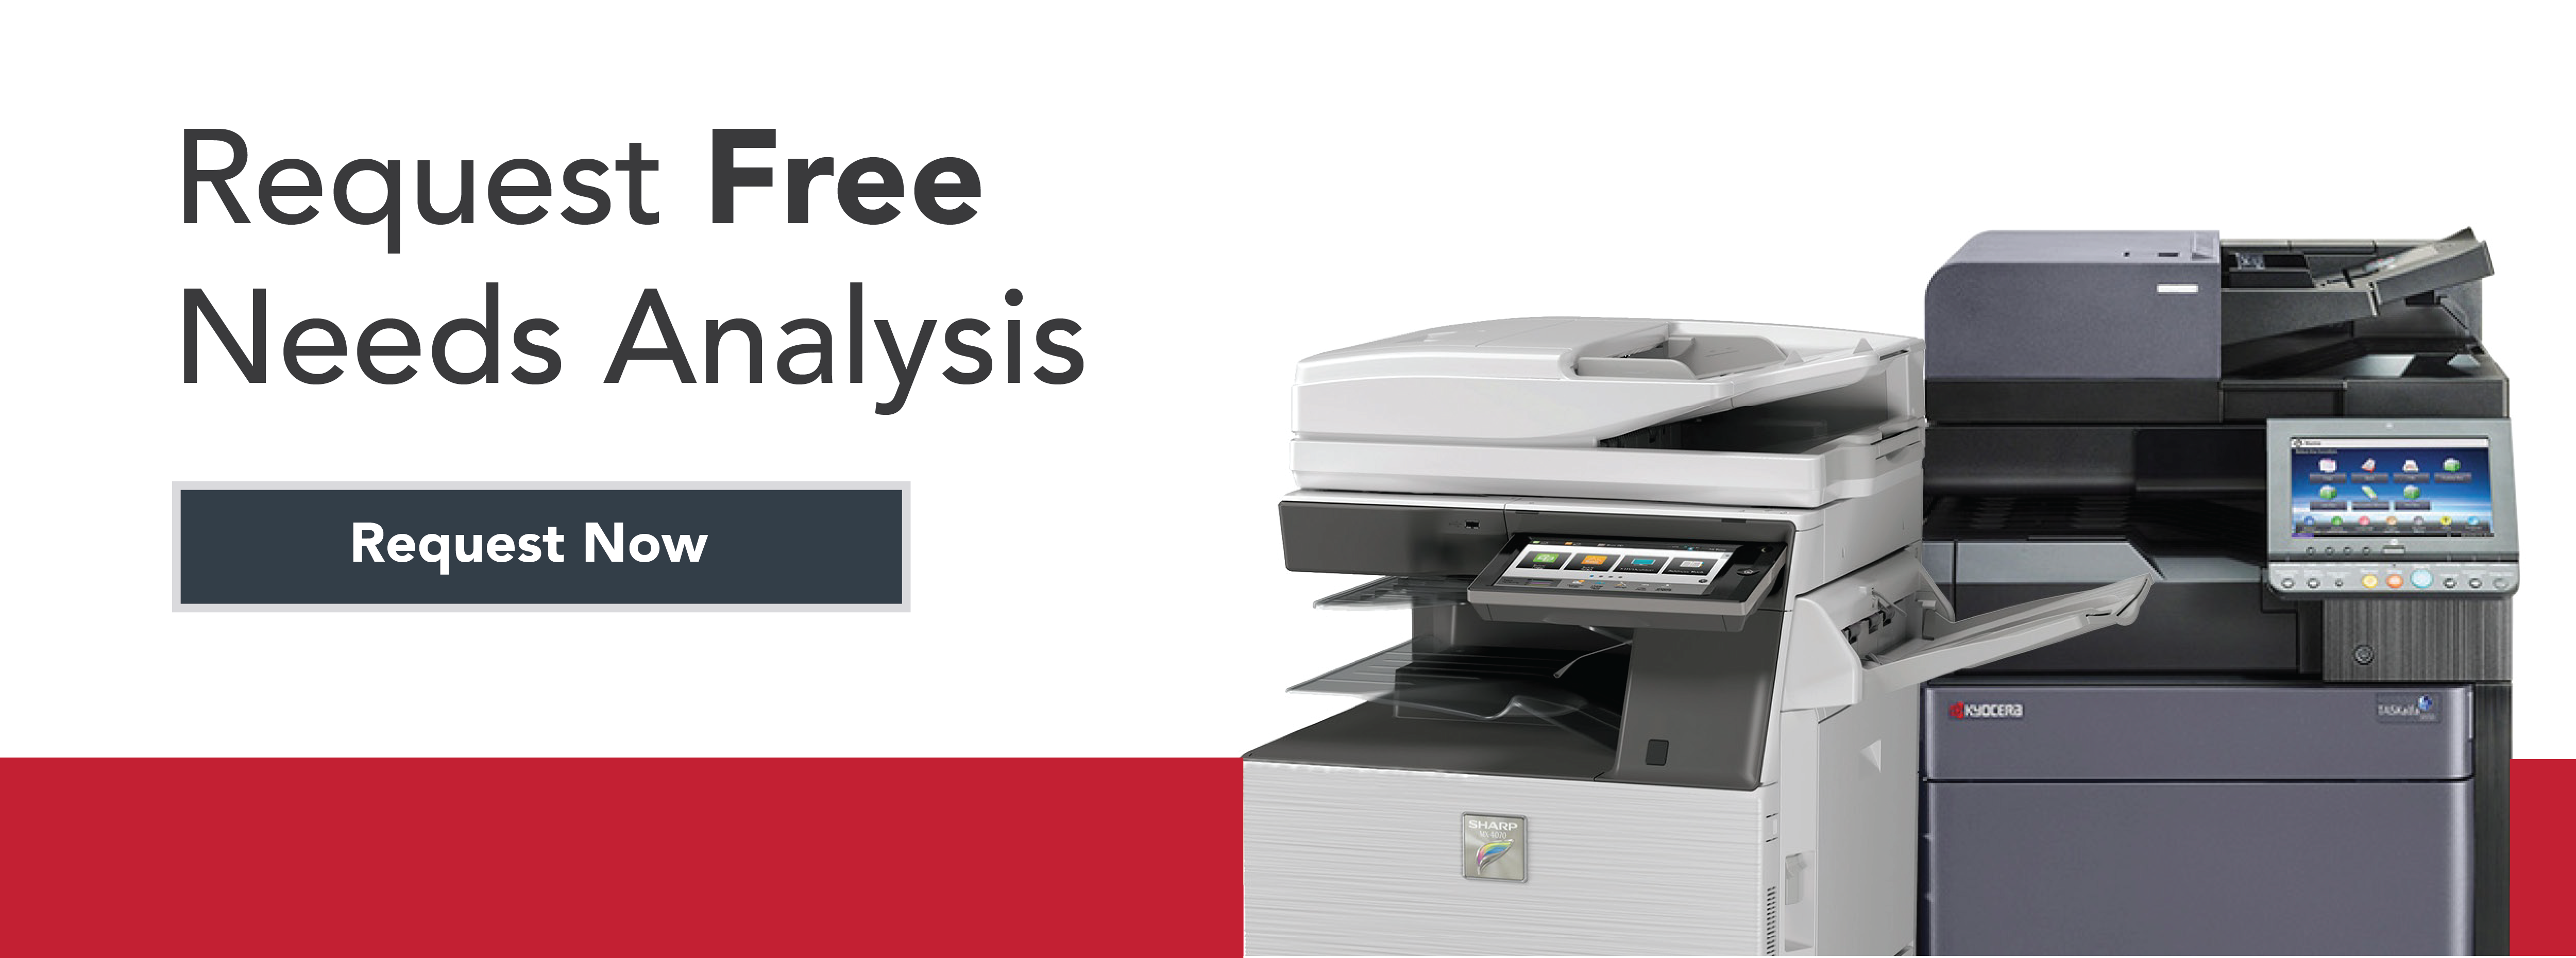 Request Free Print and Copy Needs Analysis - Request Now